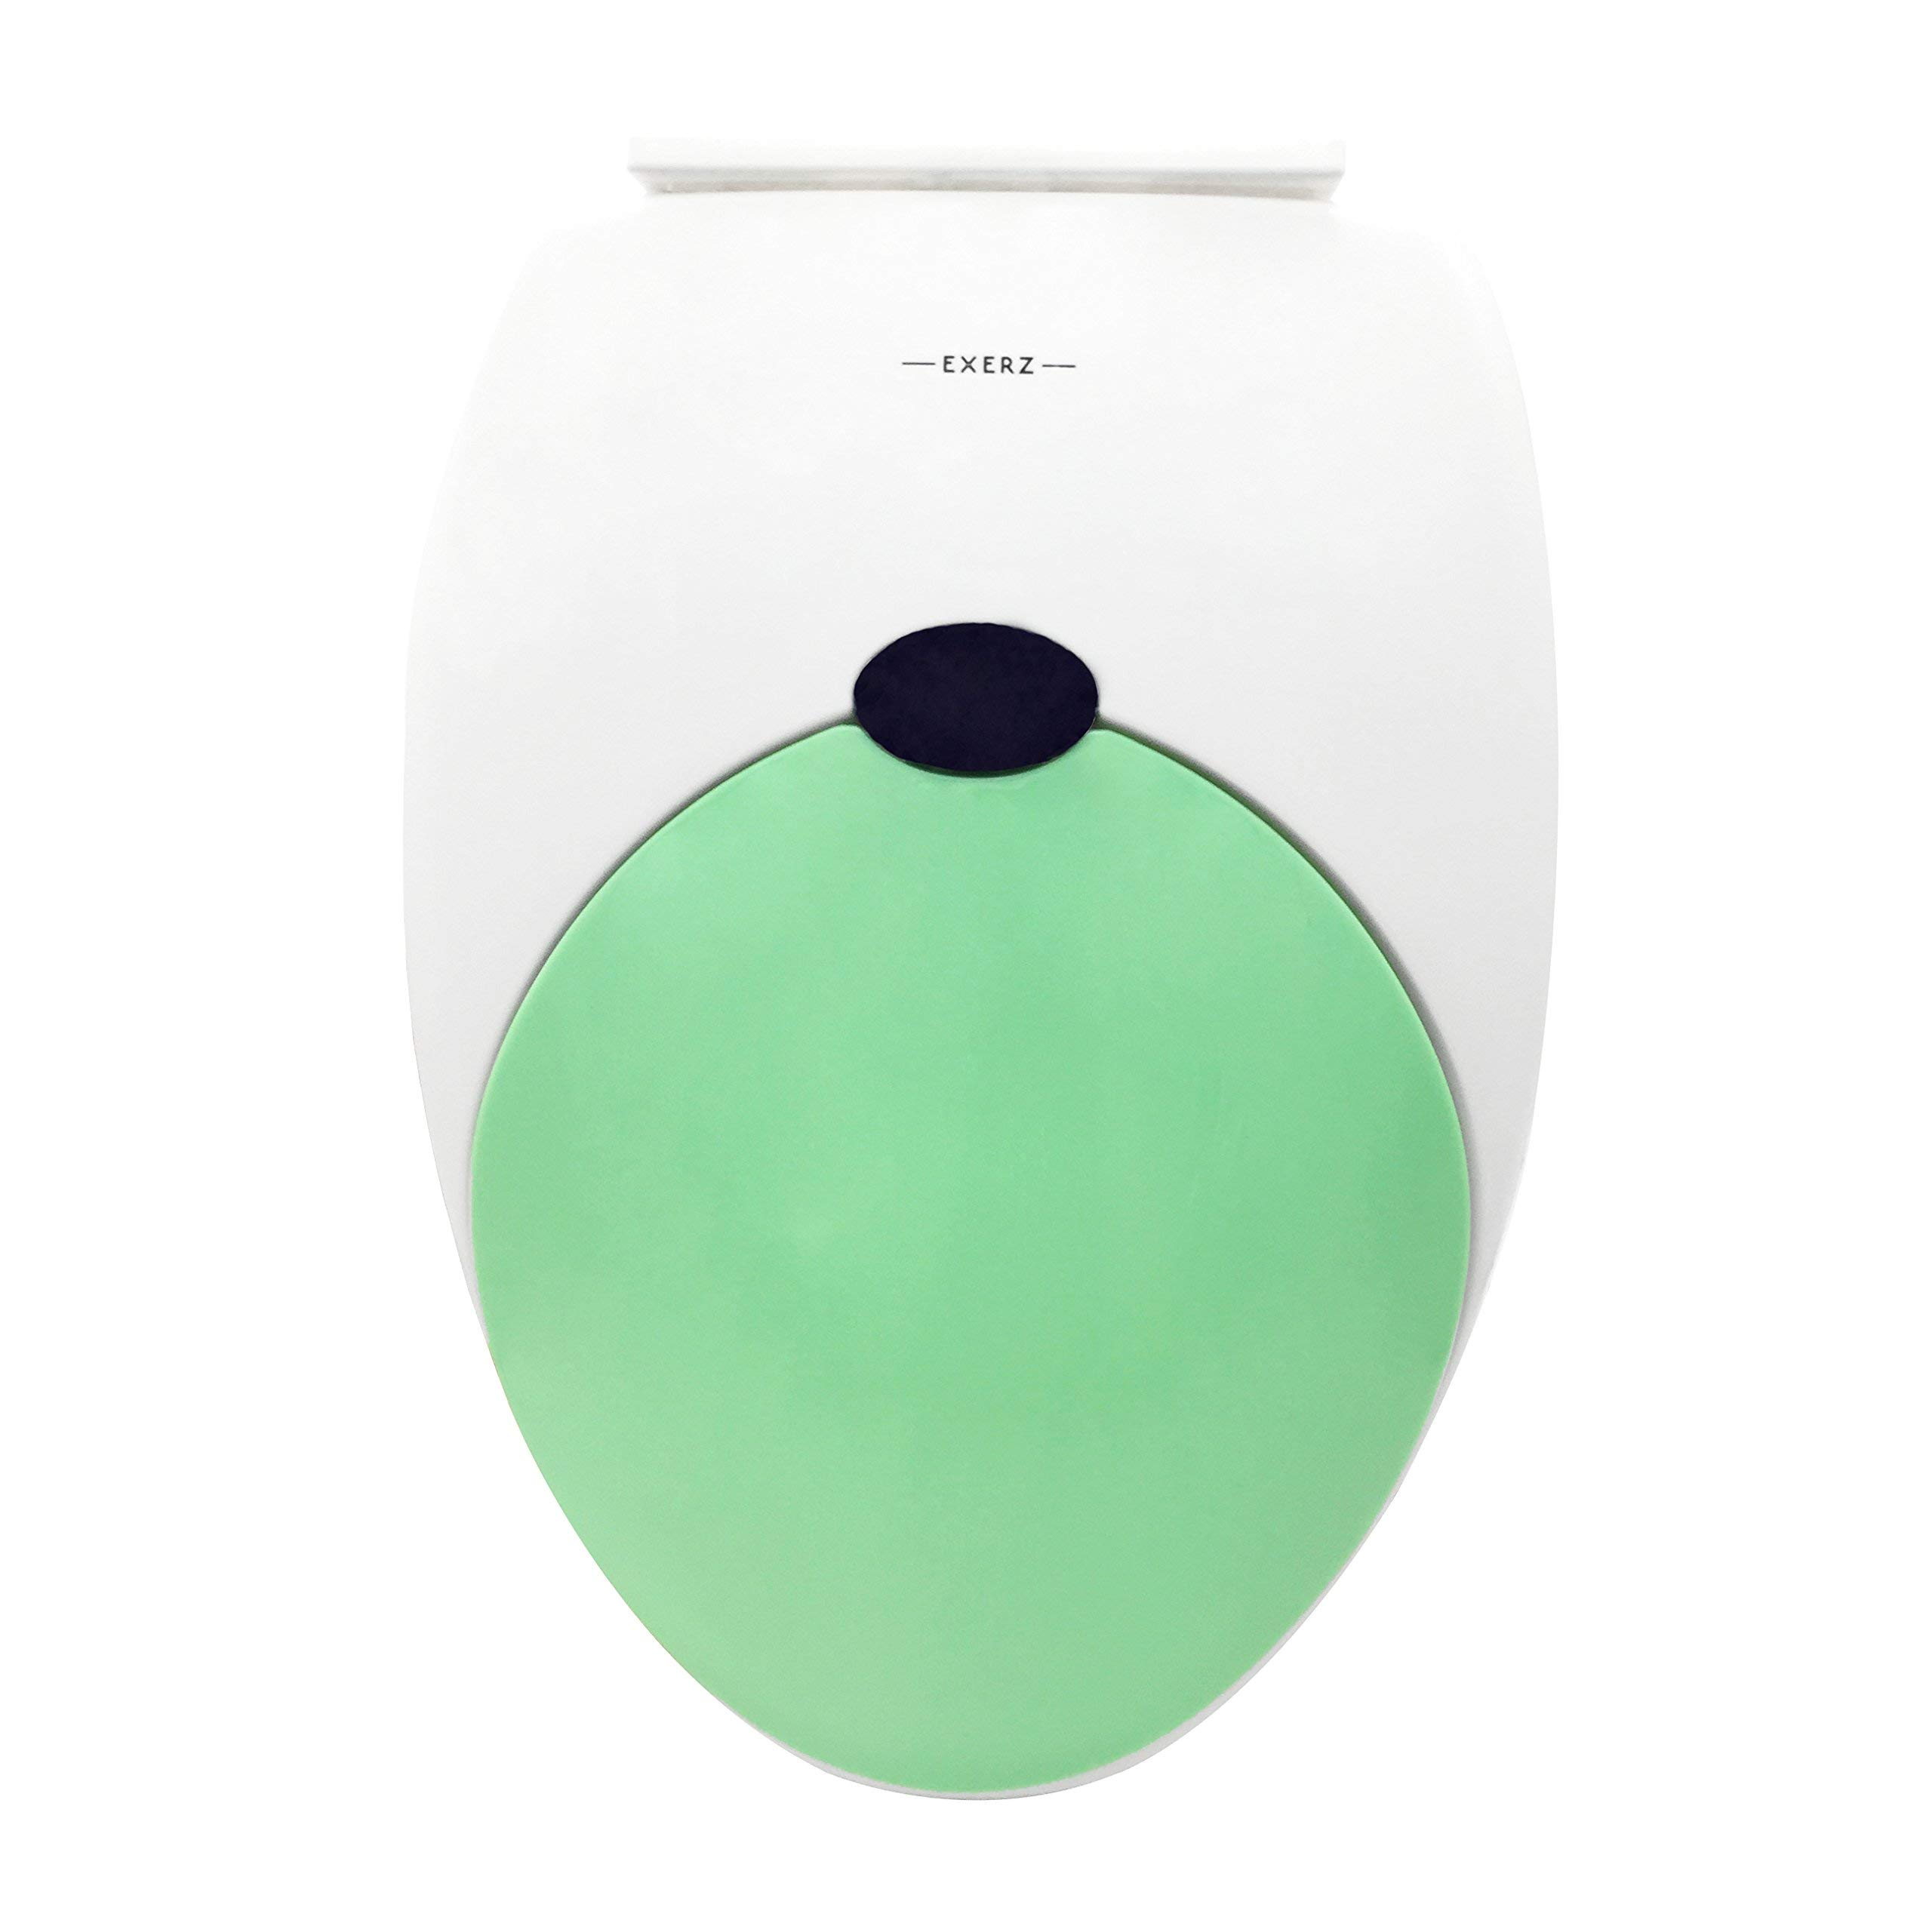 Exerz PP-052 18'' Family Toilet Seat with Built-in Child Seat Potty for Kids Adult/Stable Hinges/Easy to Mount/Bathroom Washroom Restroom (Green)